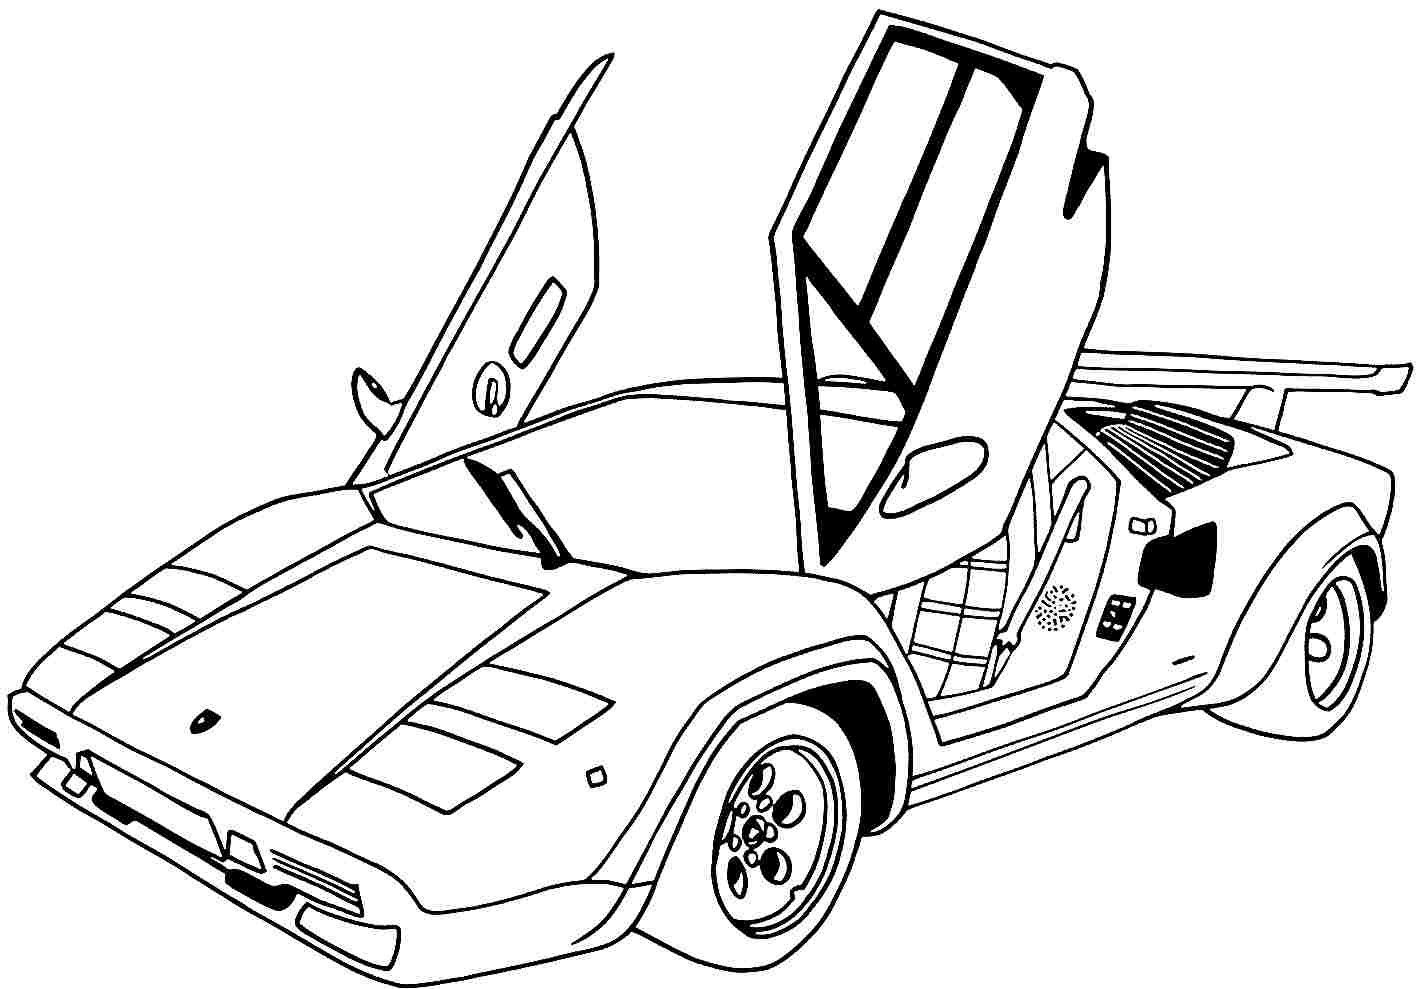 Sports Cars Coloring Pages Gallery Sports Coloring Pages Cars Coloring Pages Race Car Coloring Pages